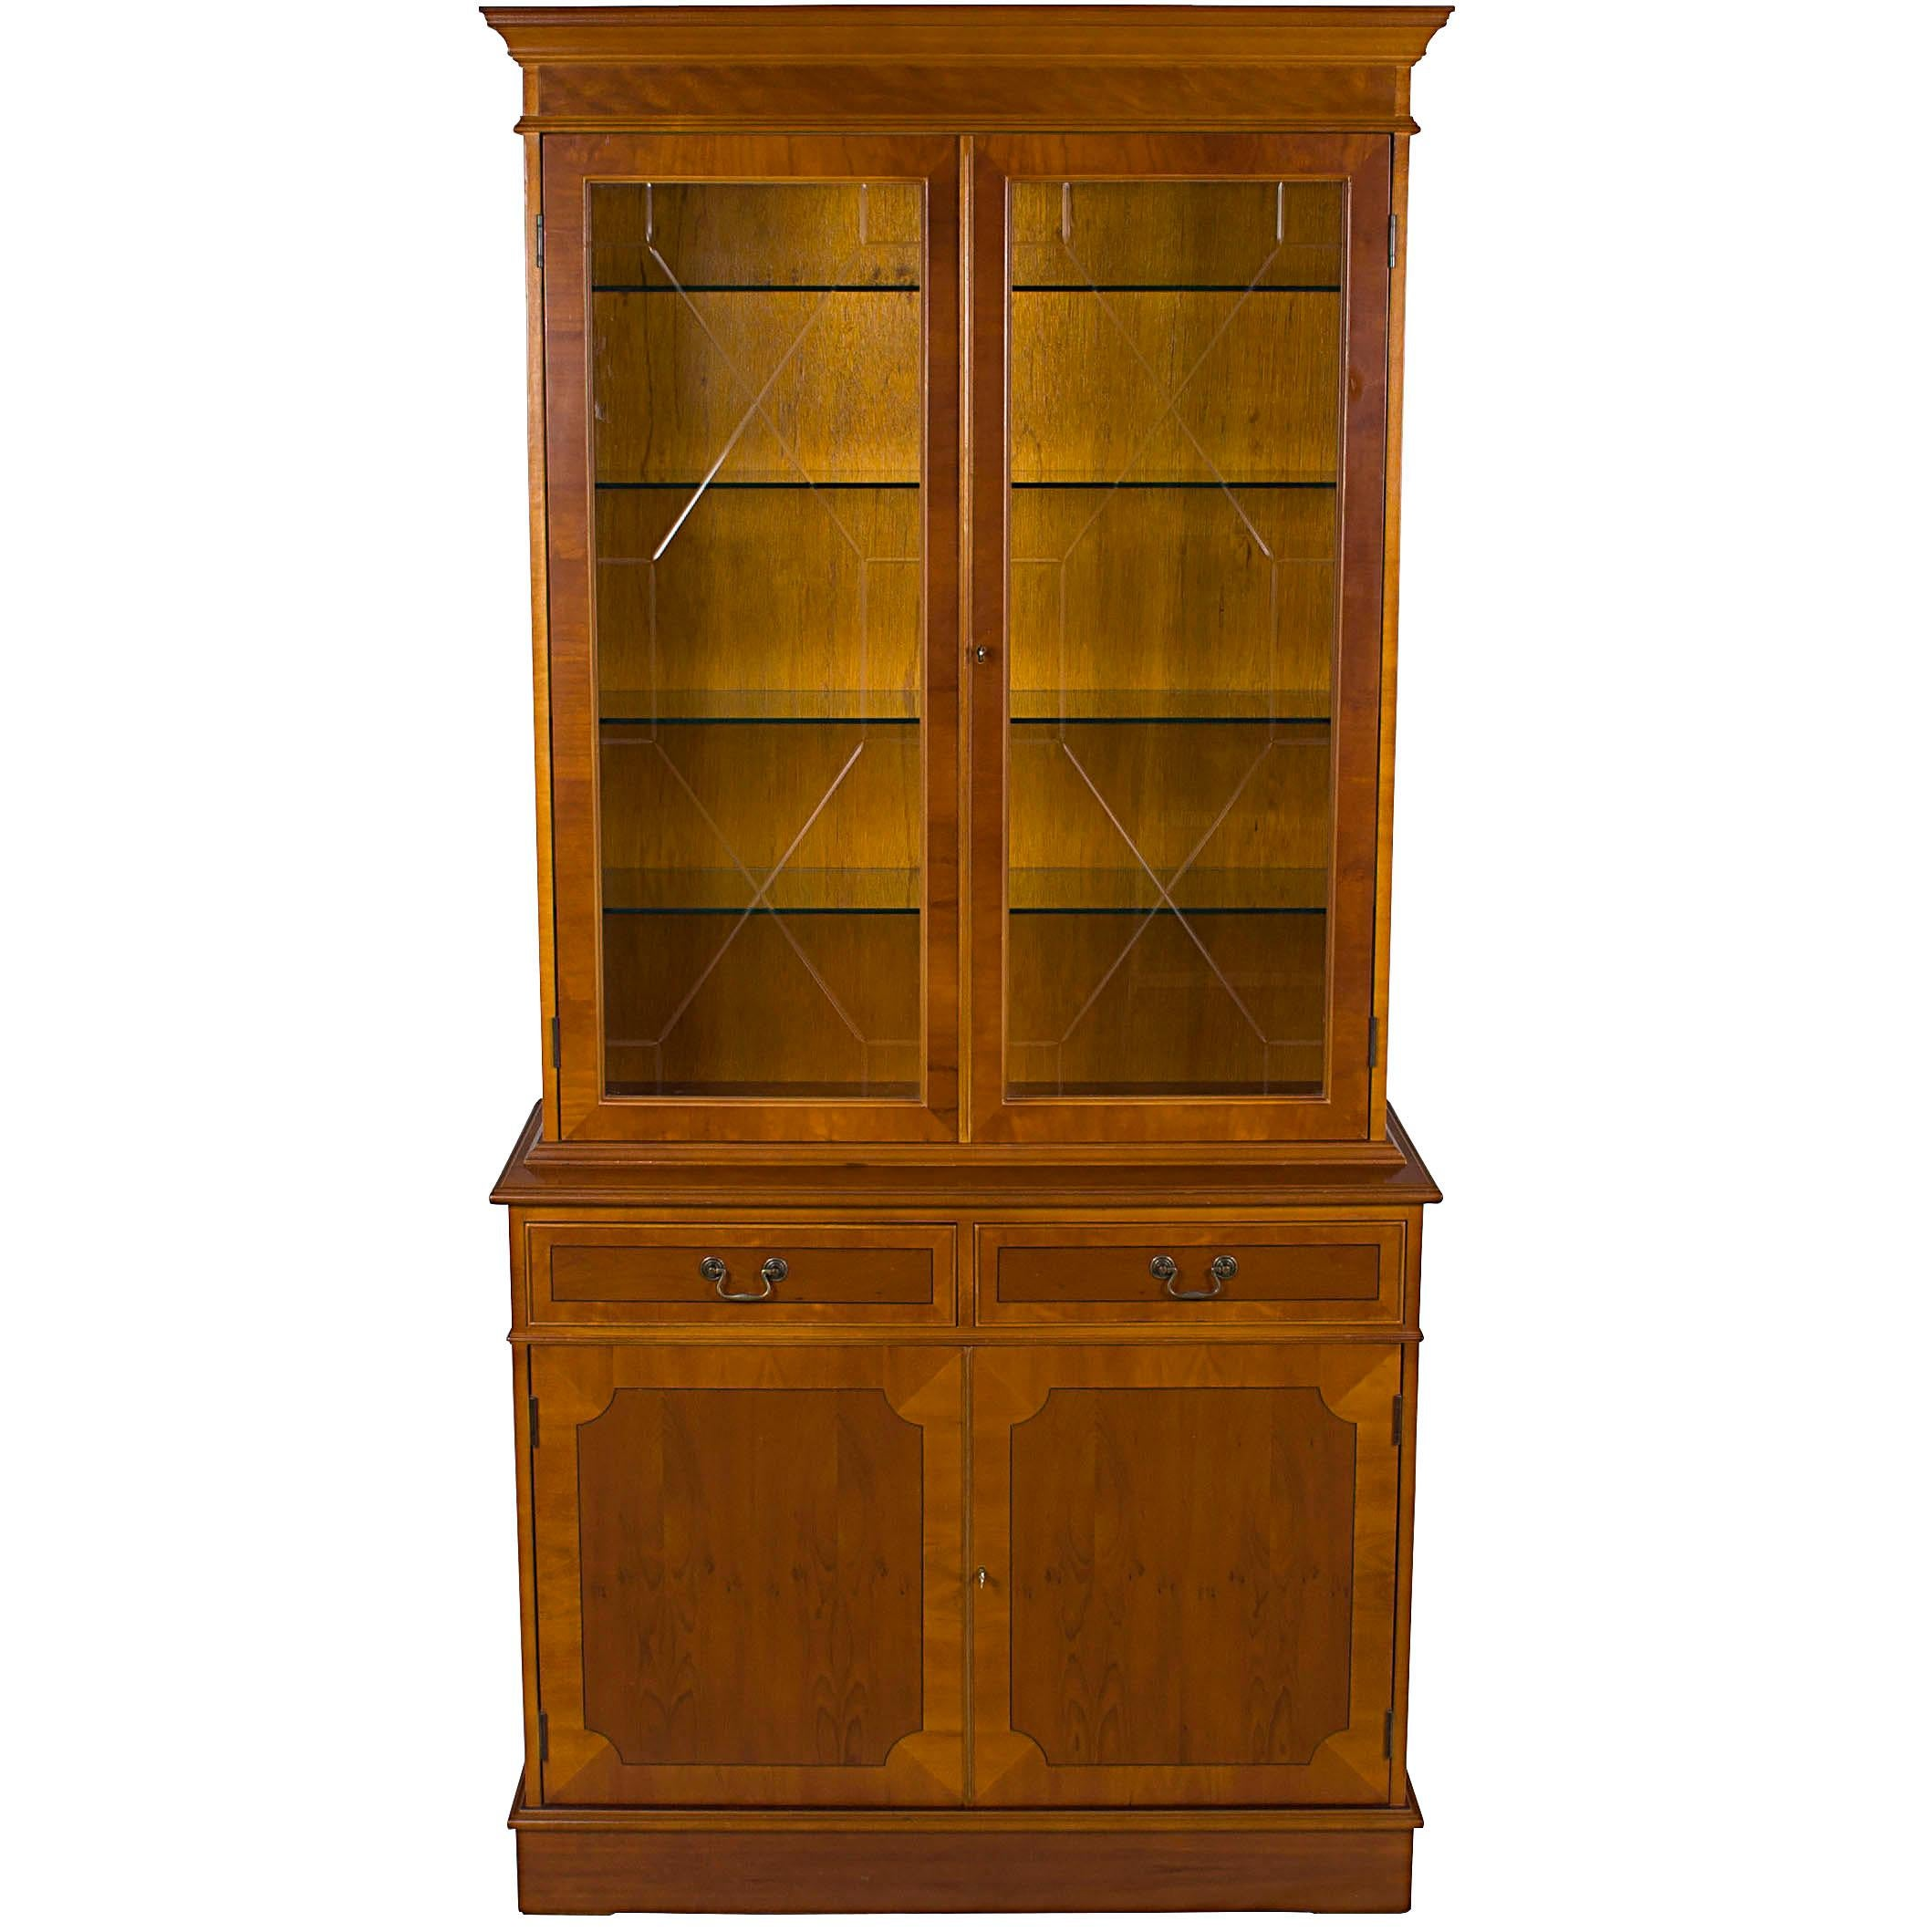 Yew Wood Two Glass Door Breakfront Small China Cabinet Bookcase For Sale